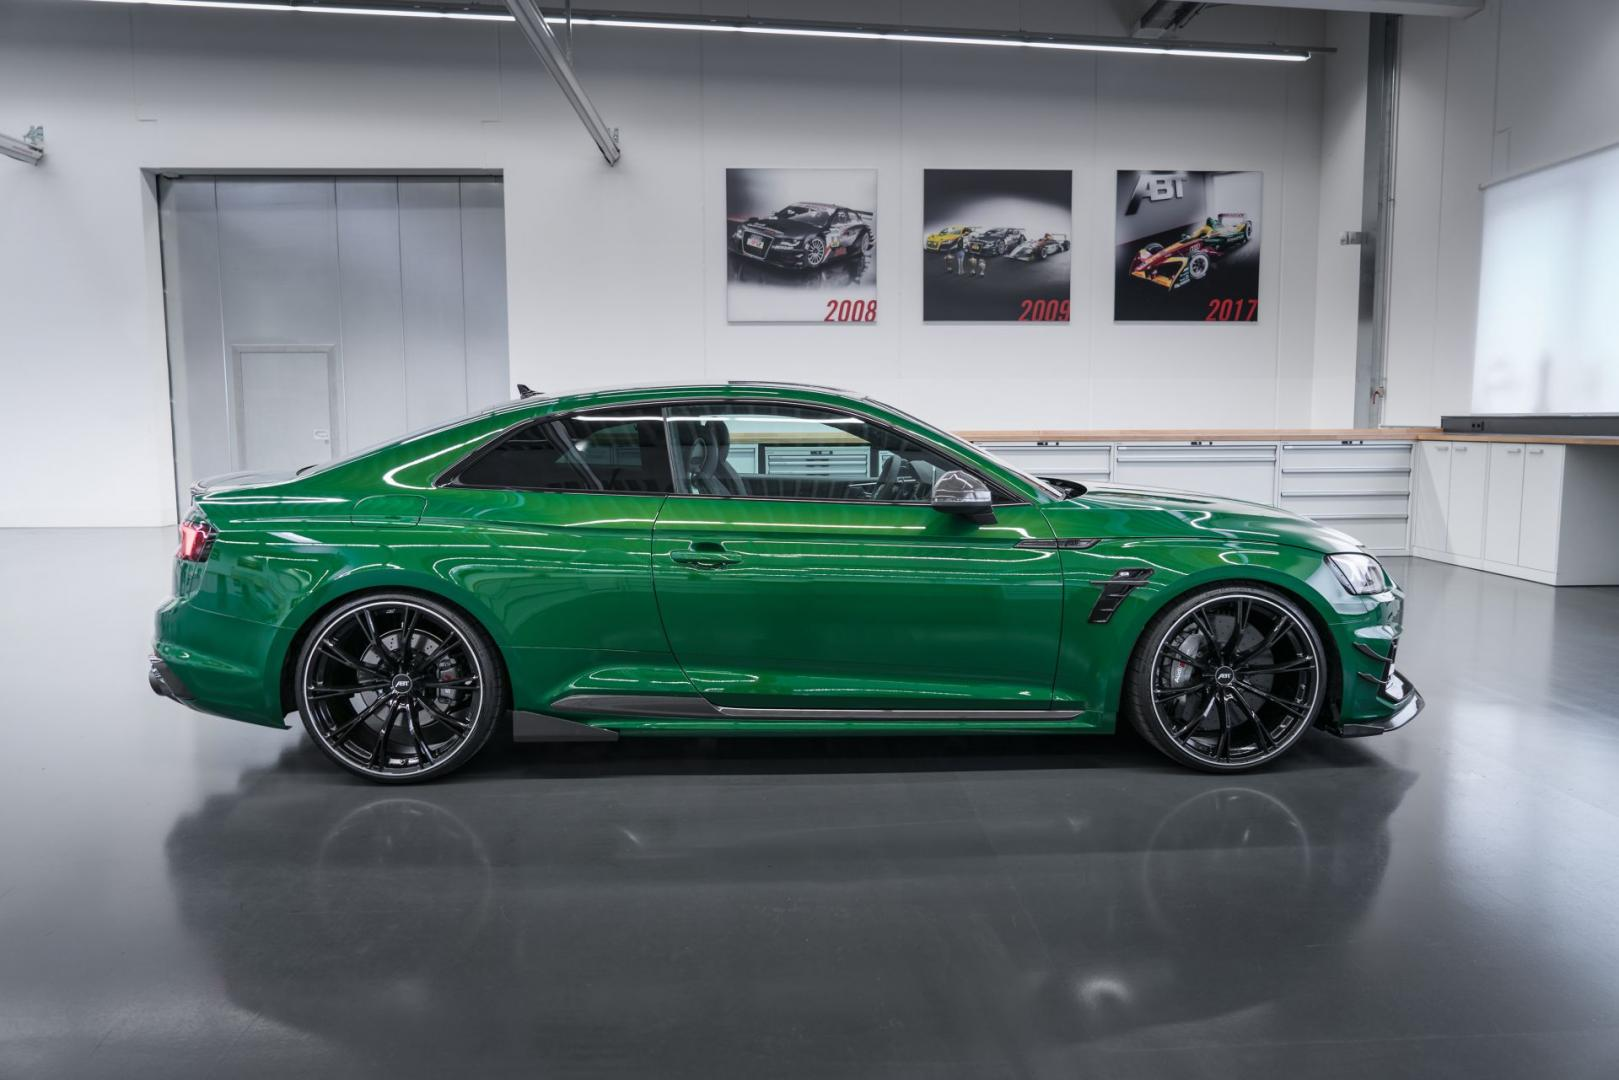 De Abt Audi Rs5 R Is Goed Voor 530 Pk En 690 Nm